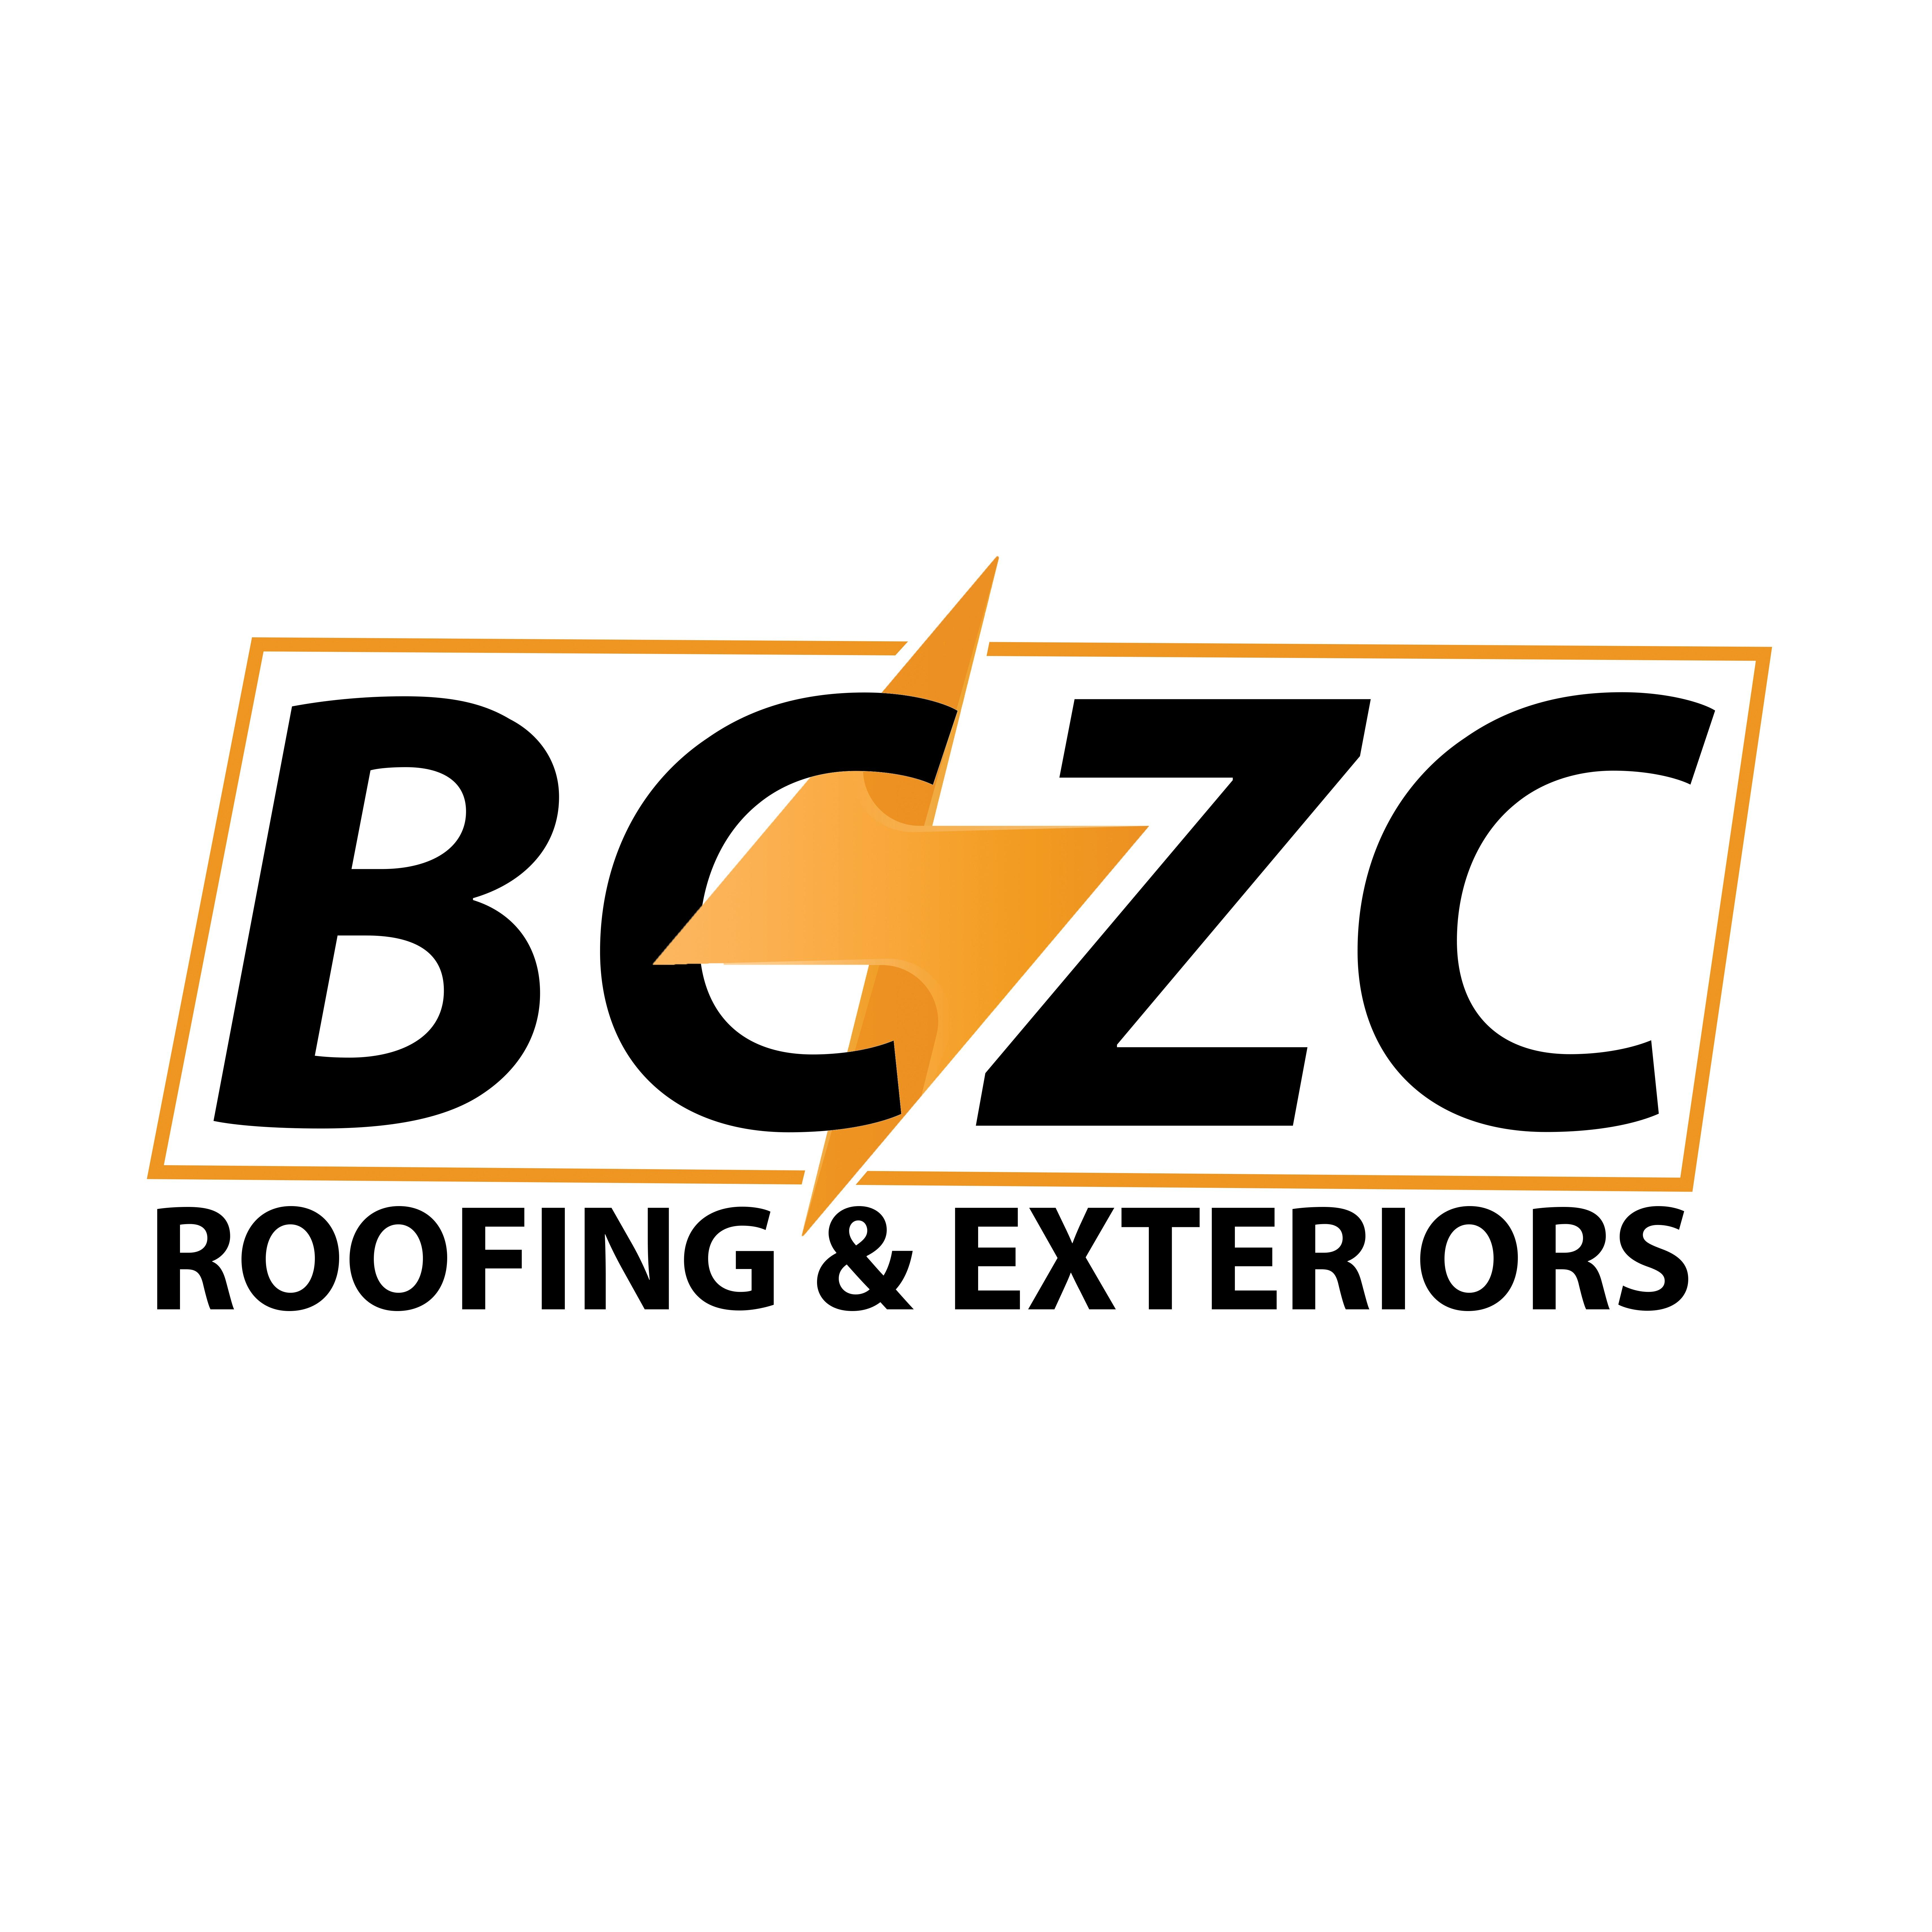 BCZC Roofing and Exterior Logo